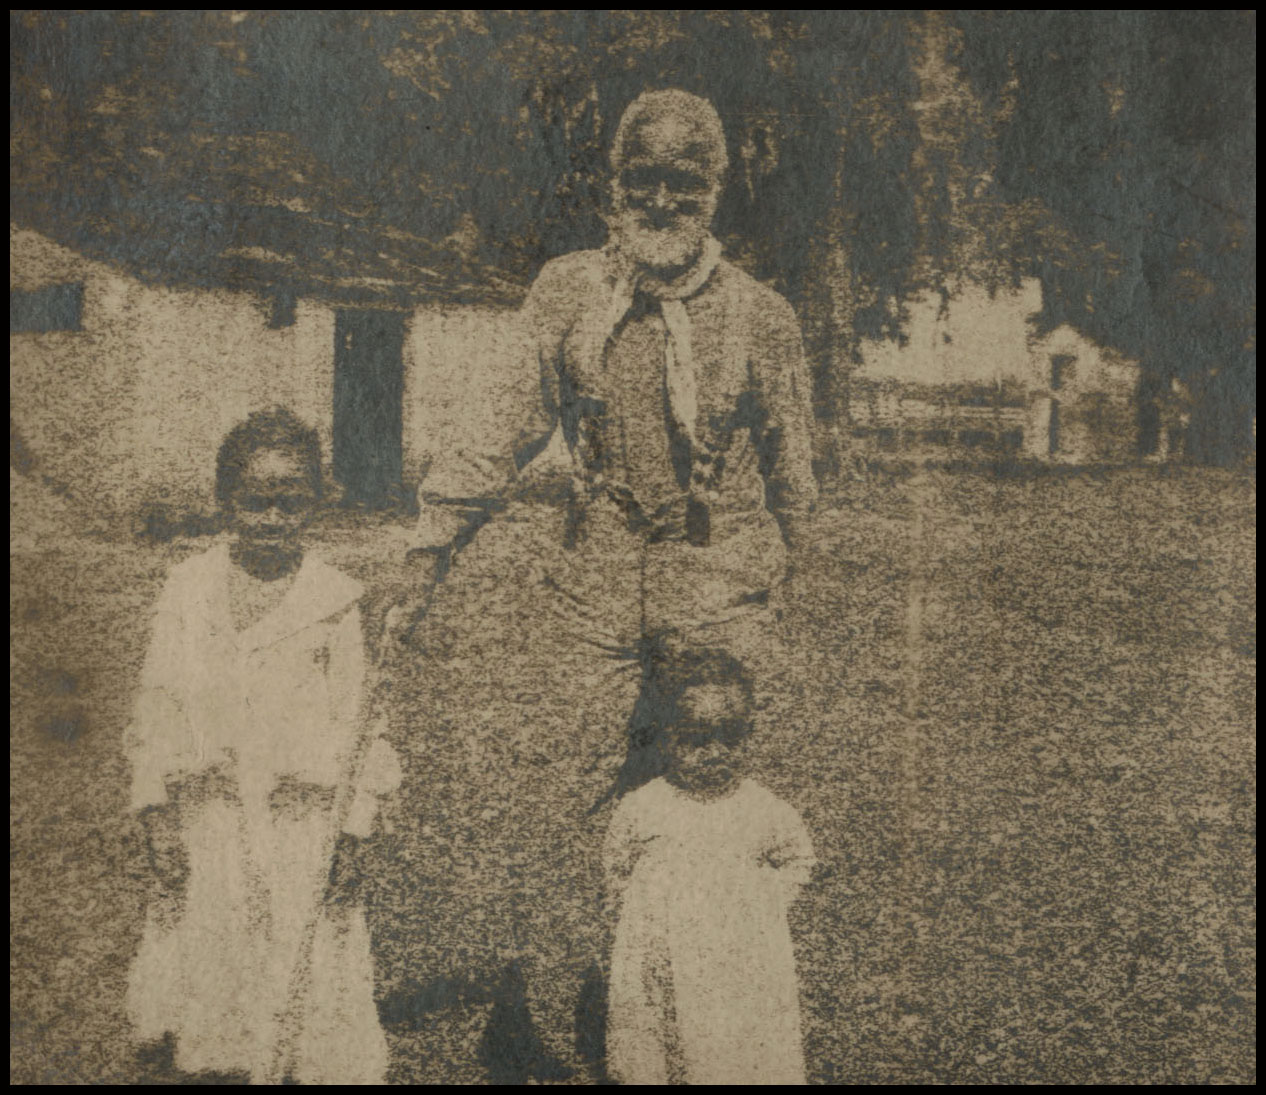 Caption: Frank Campbell was a teenager when he was sold to keep Georgetown University afloat. He was one of some 272 enslaved people sold by Jesuits in Maryland to plantations in Louisiana., Credit: Ellender Memorial Library, Nicholls State University